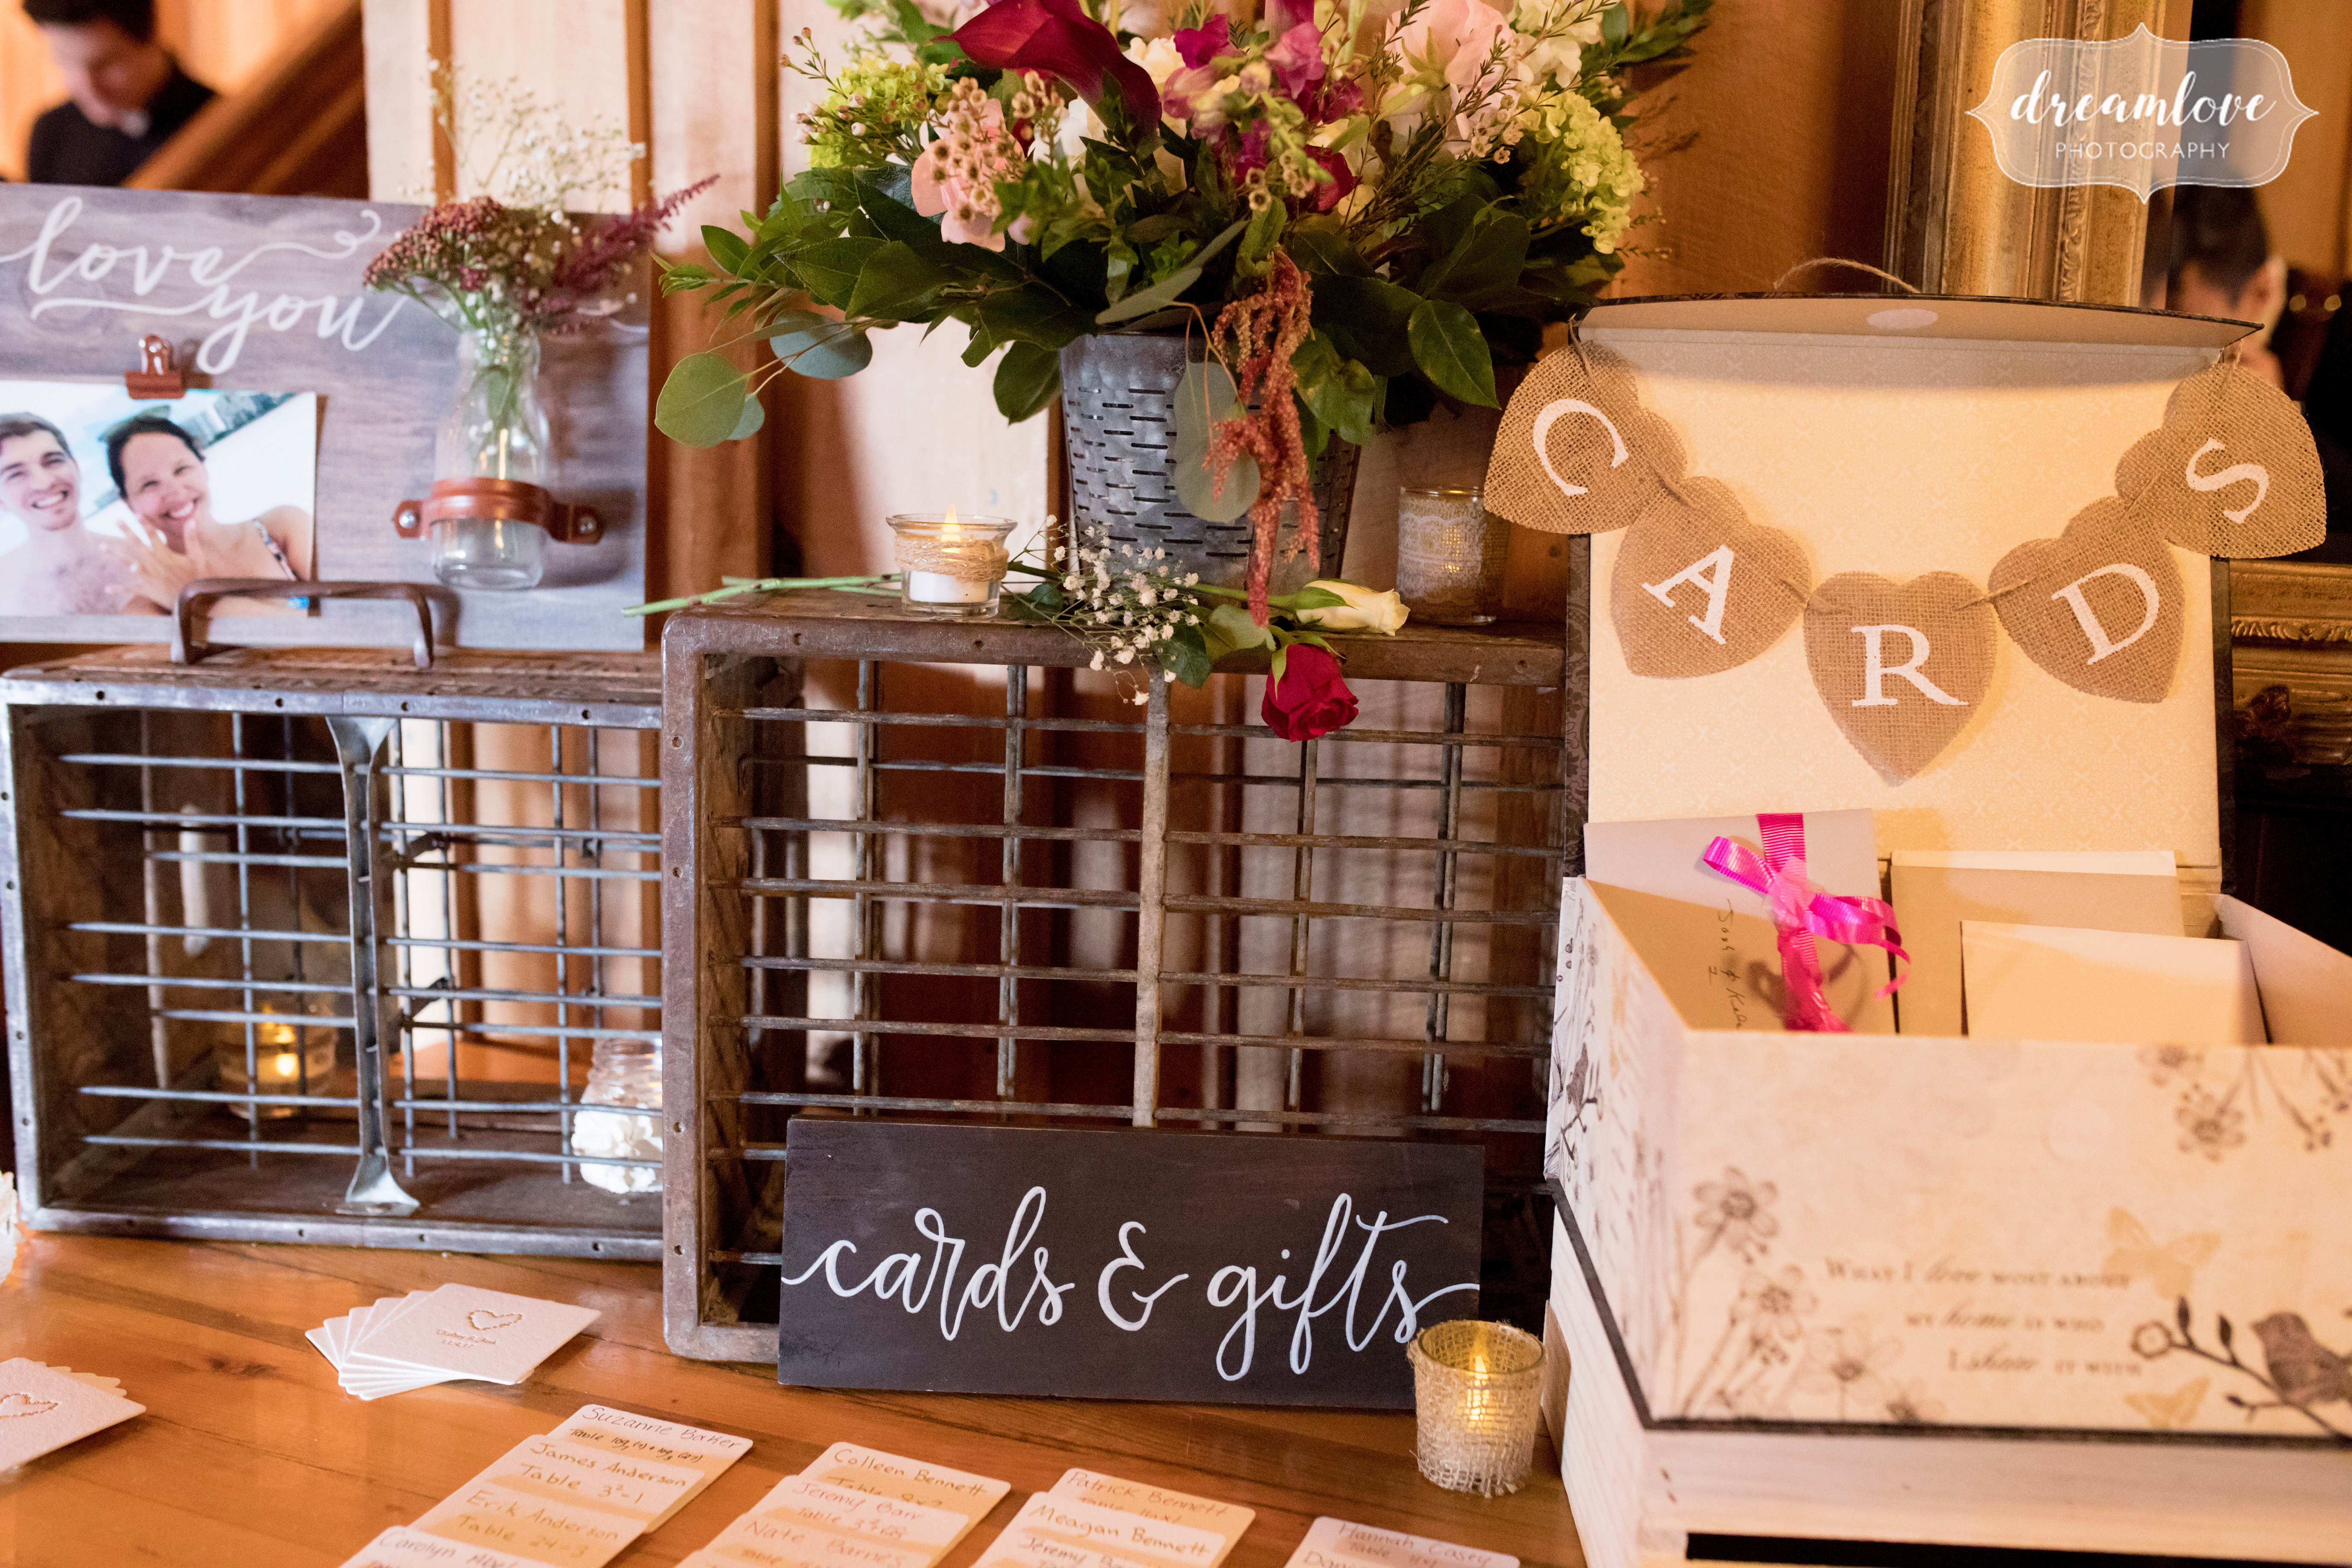 Pavilion on Crystal Lake fall wedding decor ideas with wooden crates.